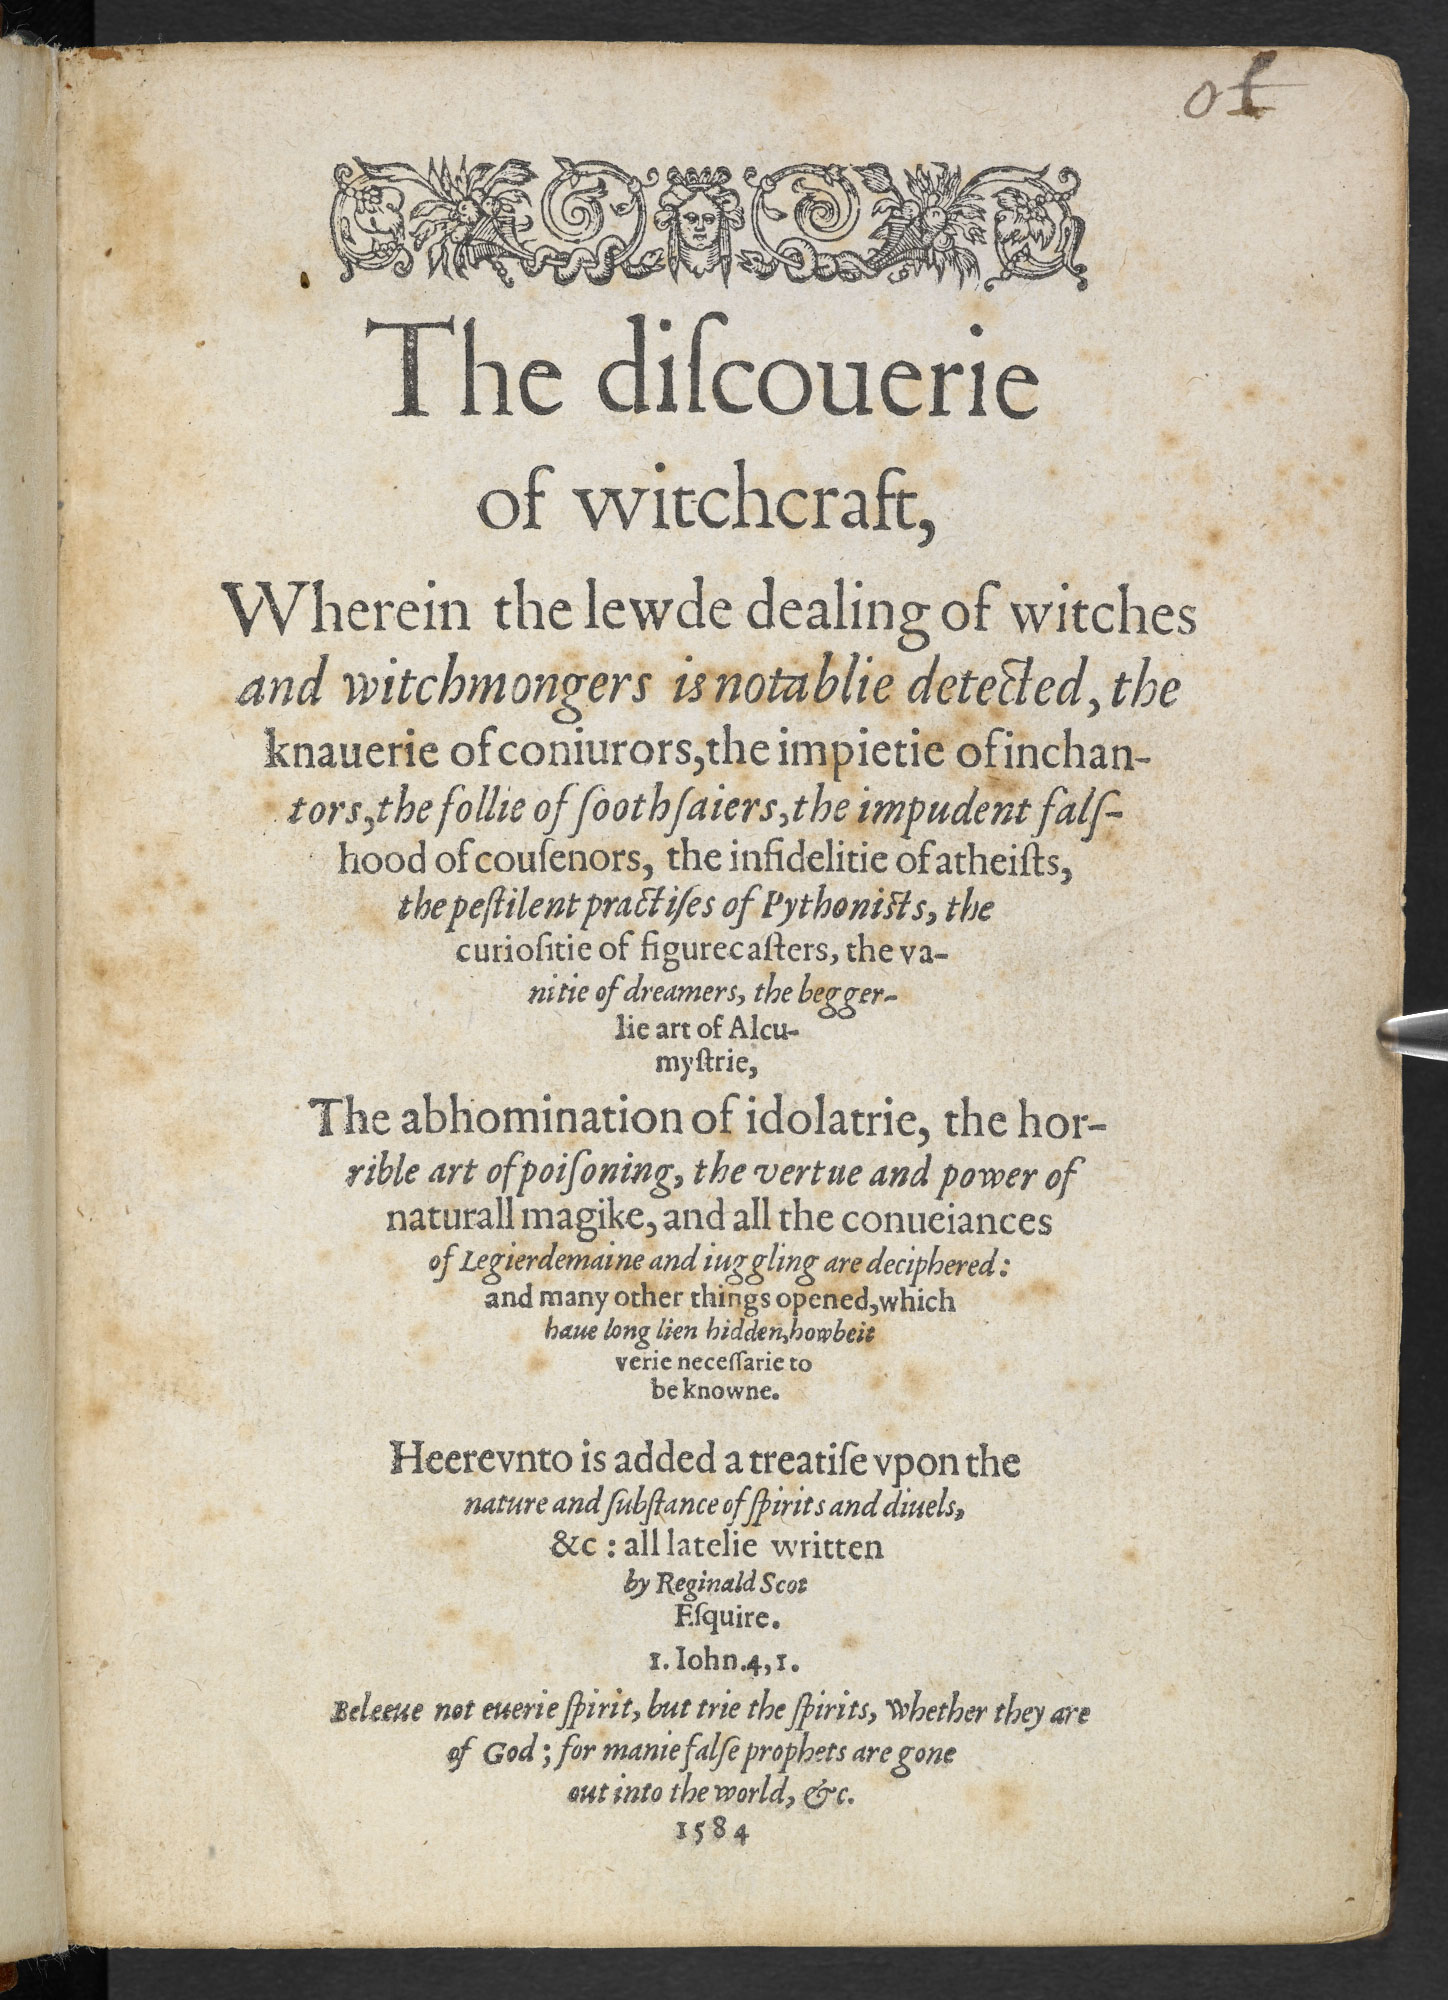 The Discovery of Witchcraft by Reginald Scot, 1584